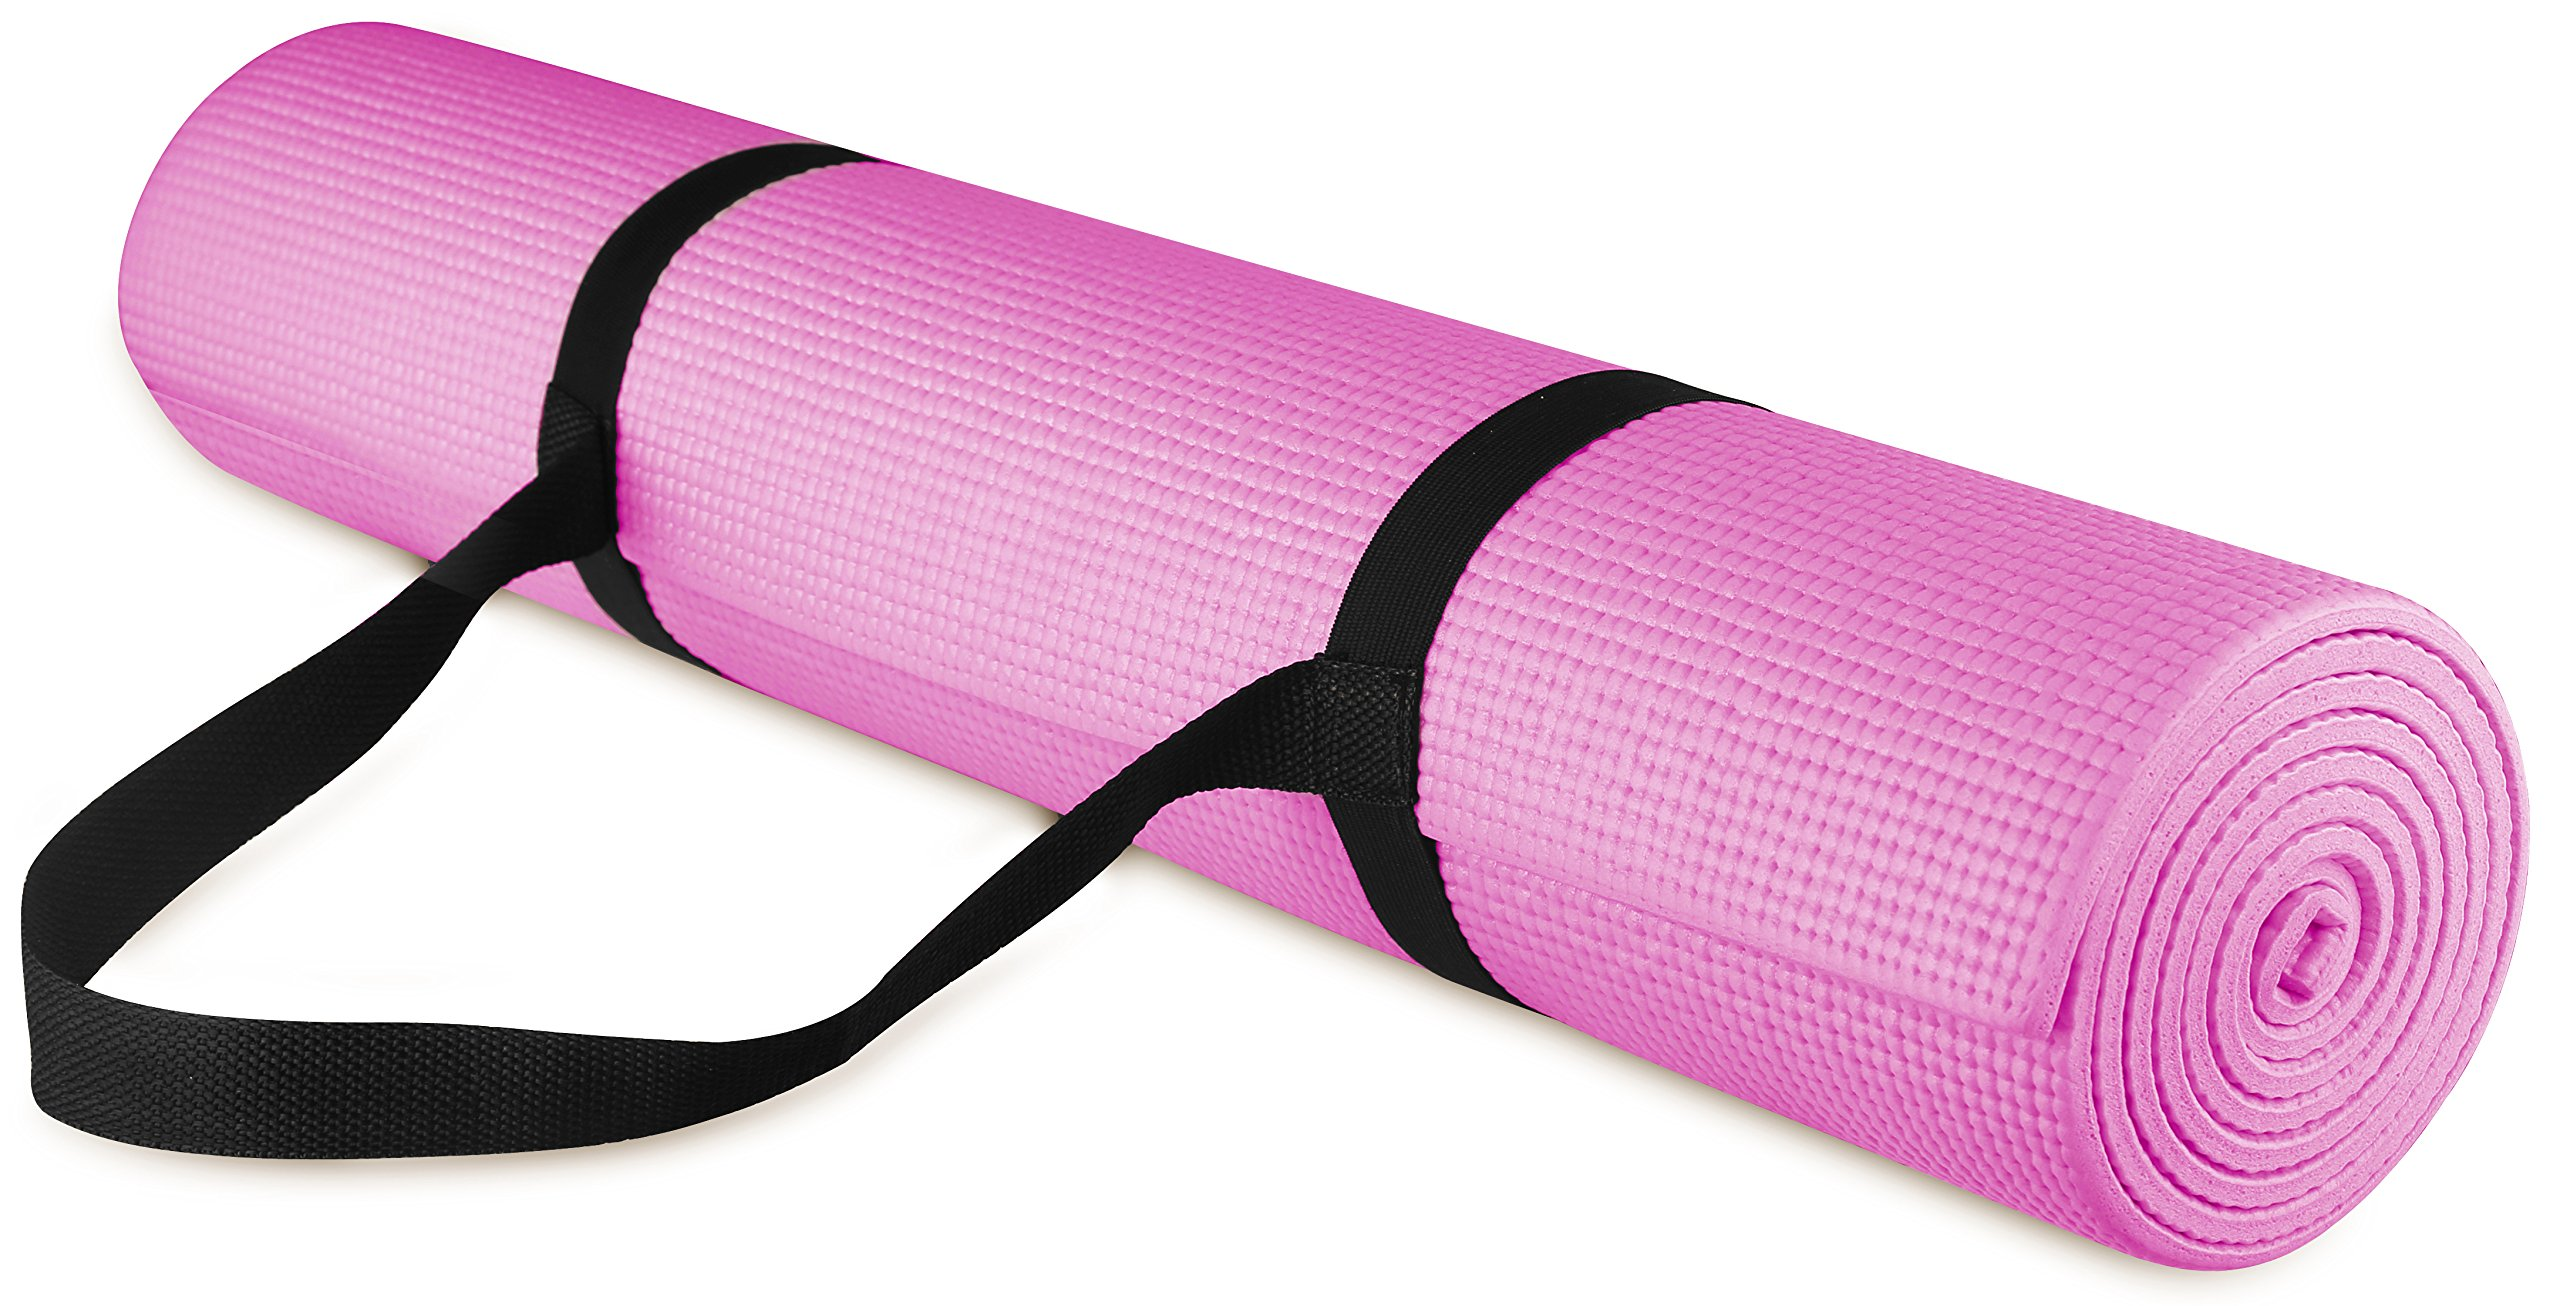 BalanceFrom GoYoga All Purpose High Density Non-Slip Exercise Yoga Mat with Carrying Strap, 1/4'', Pink